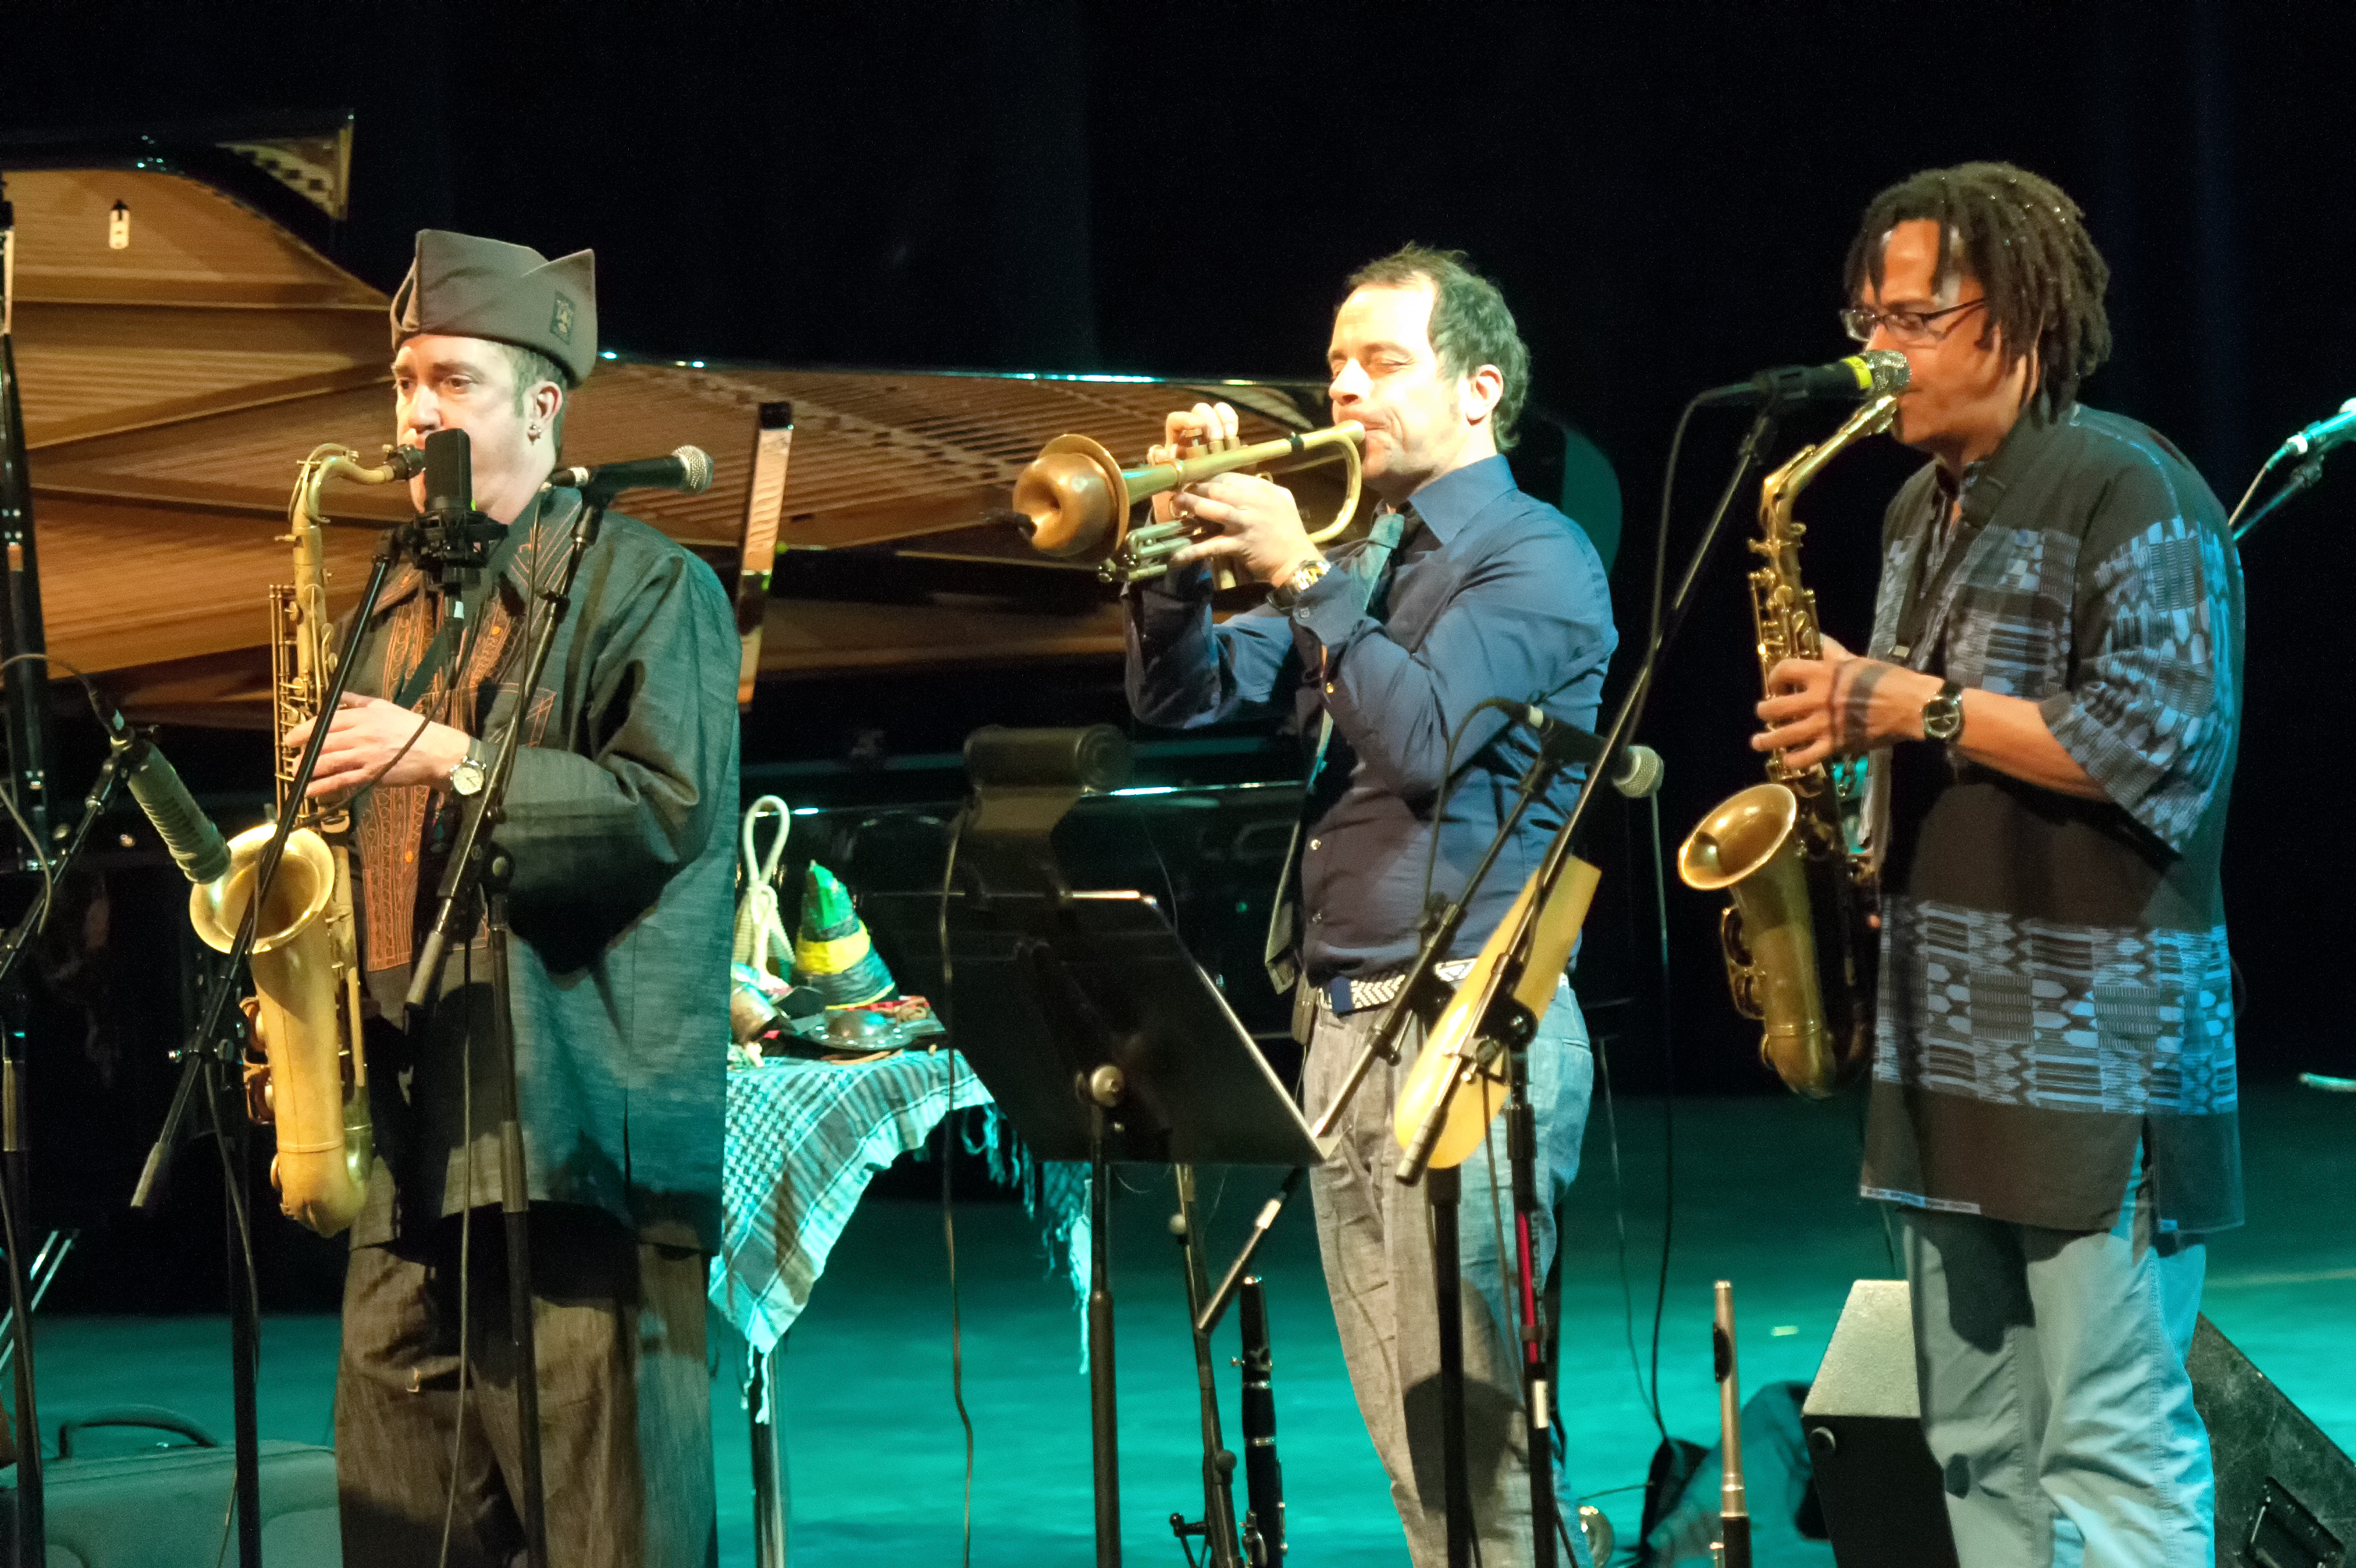 Peter apfelbaum, joo kraus and leandro saint-hill with omar sosa and the afri-lectric experience at the tempe arts center